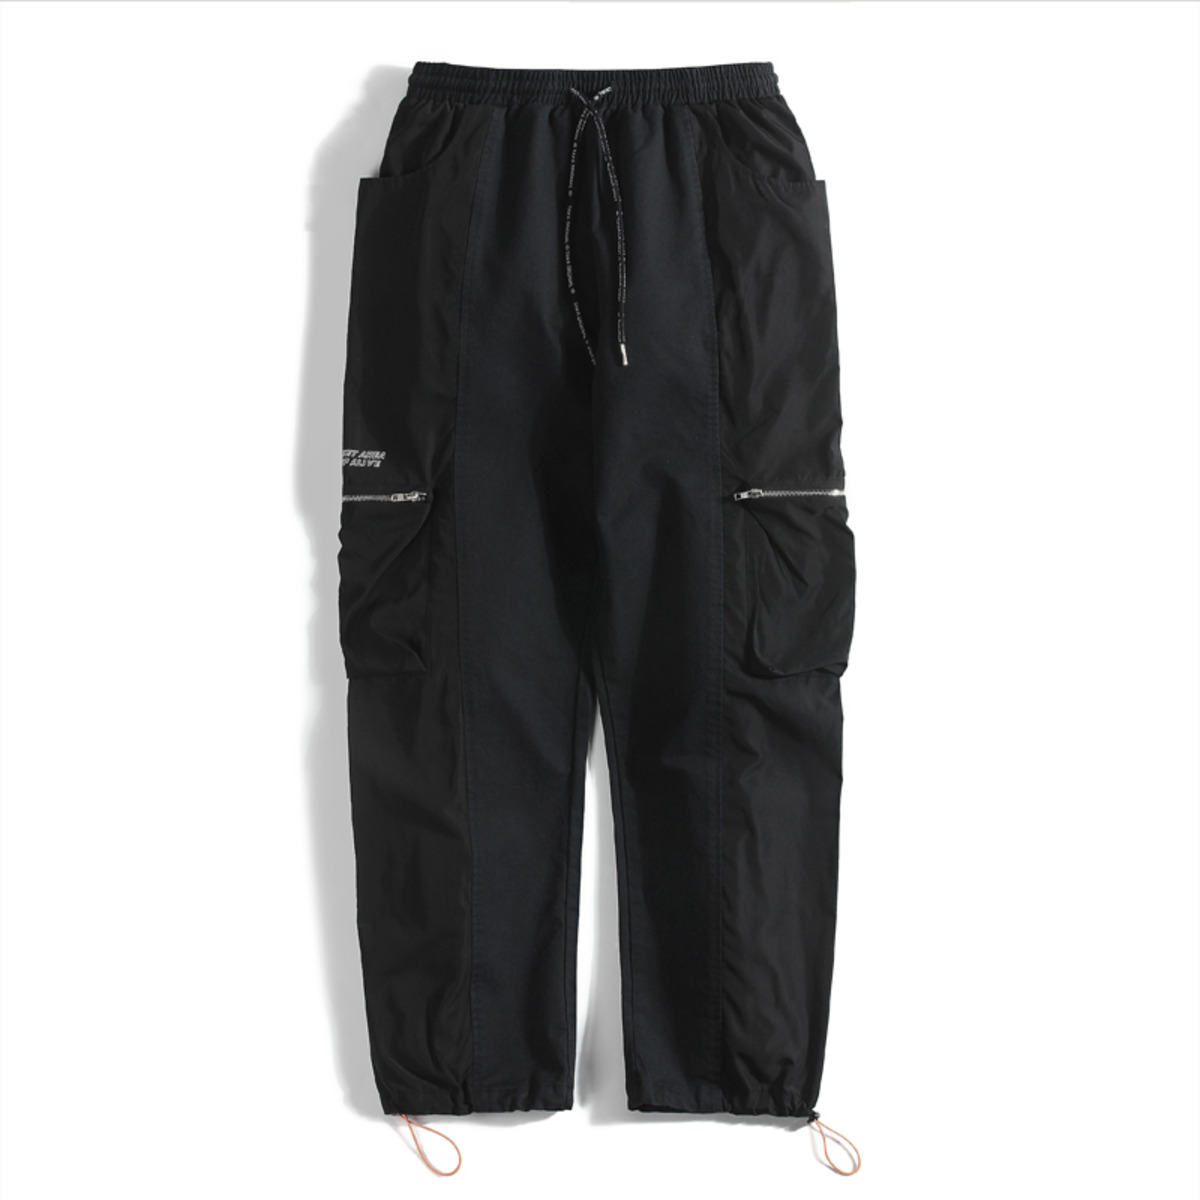 "TAKA ORIGINAL ""FINAL MALFUNCTION"" CARGO PANTS"